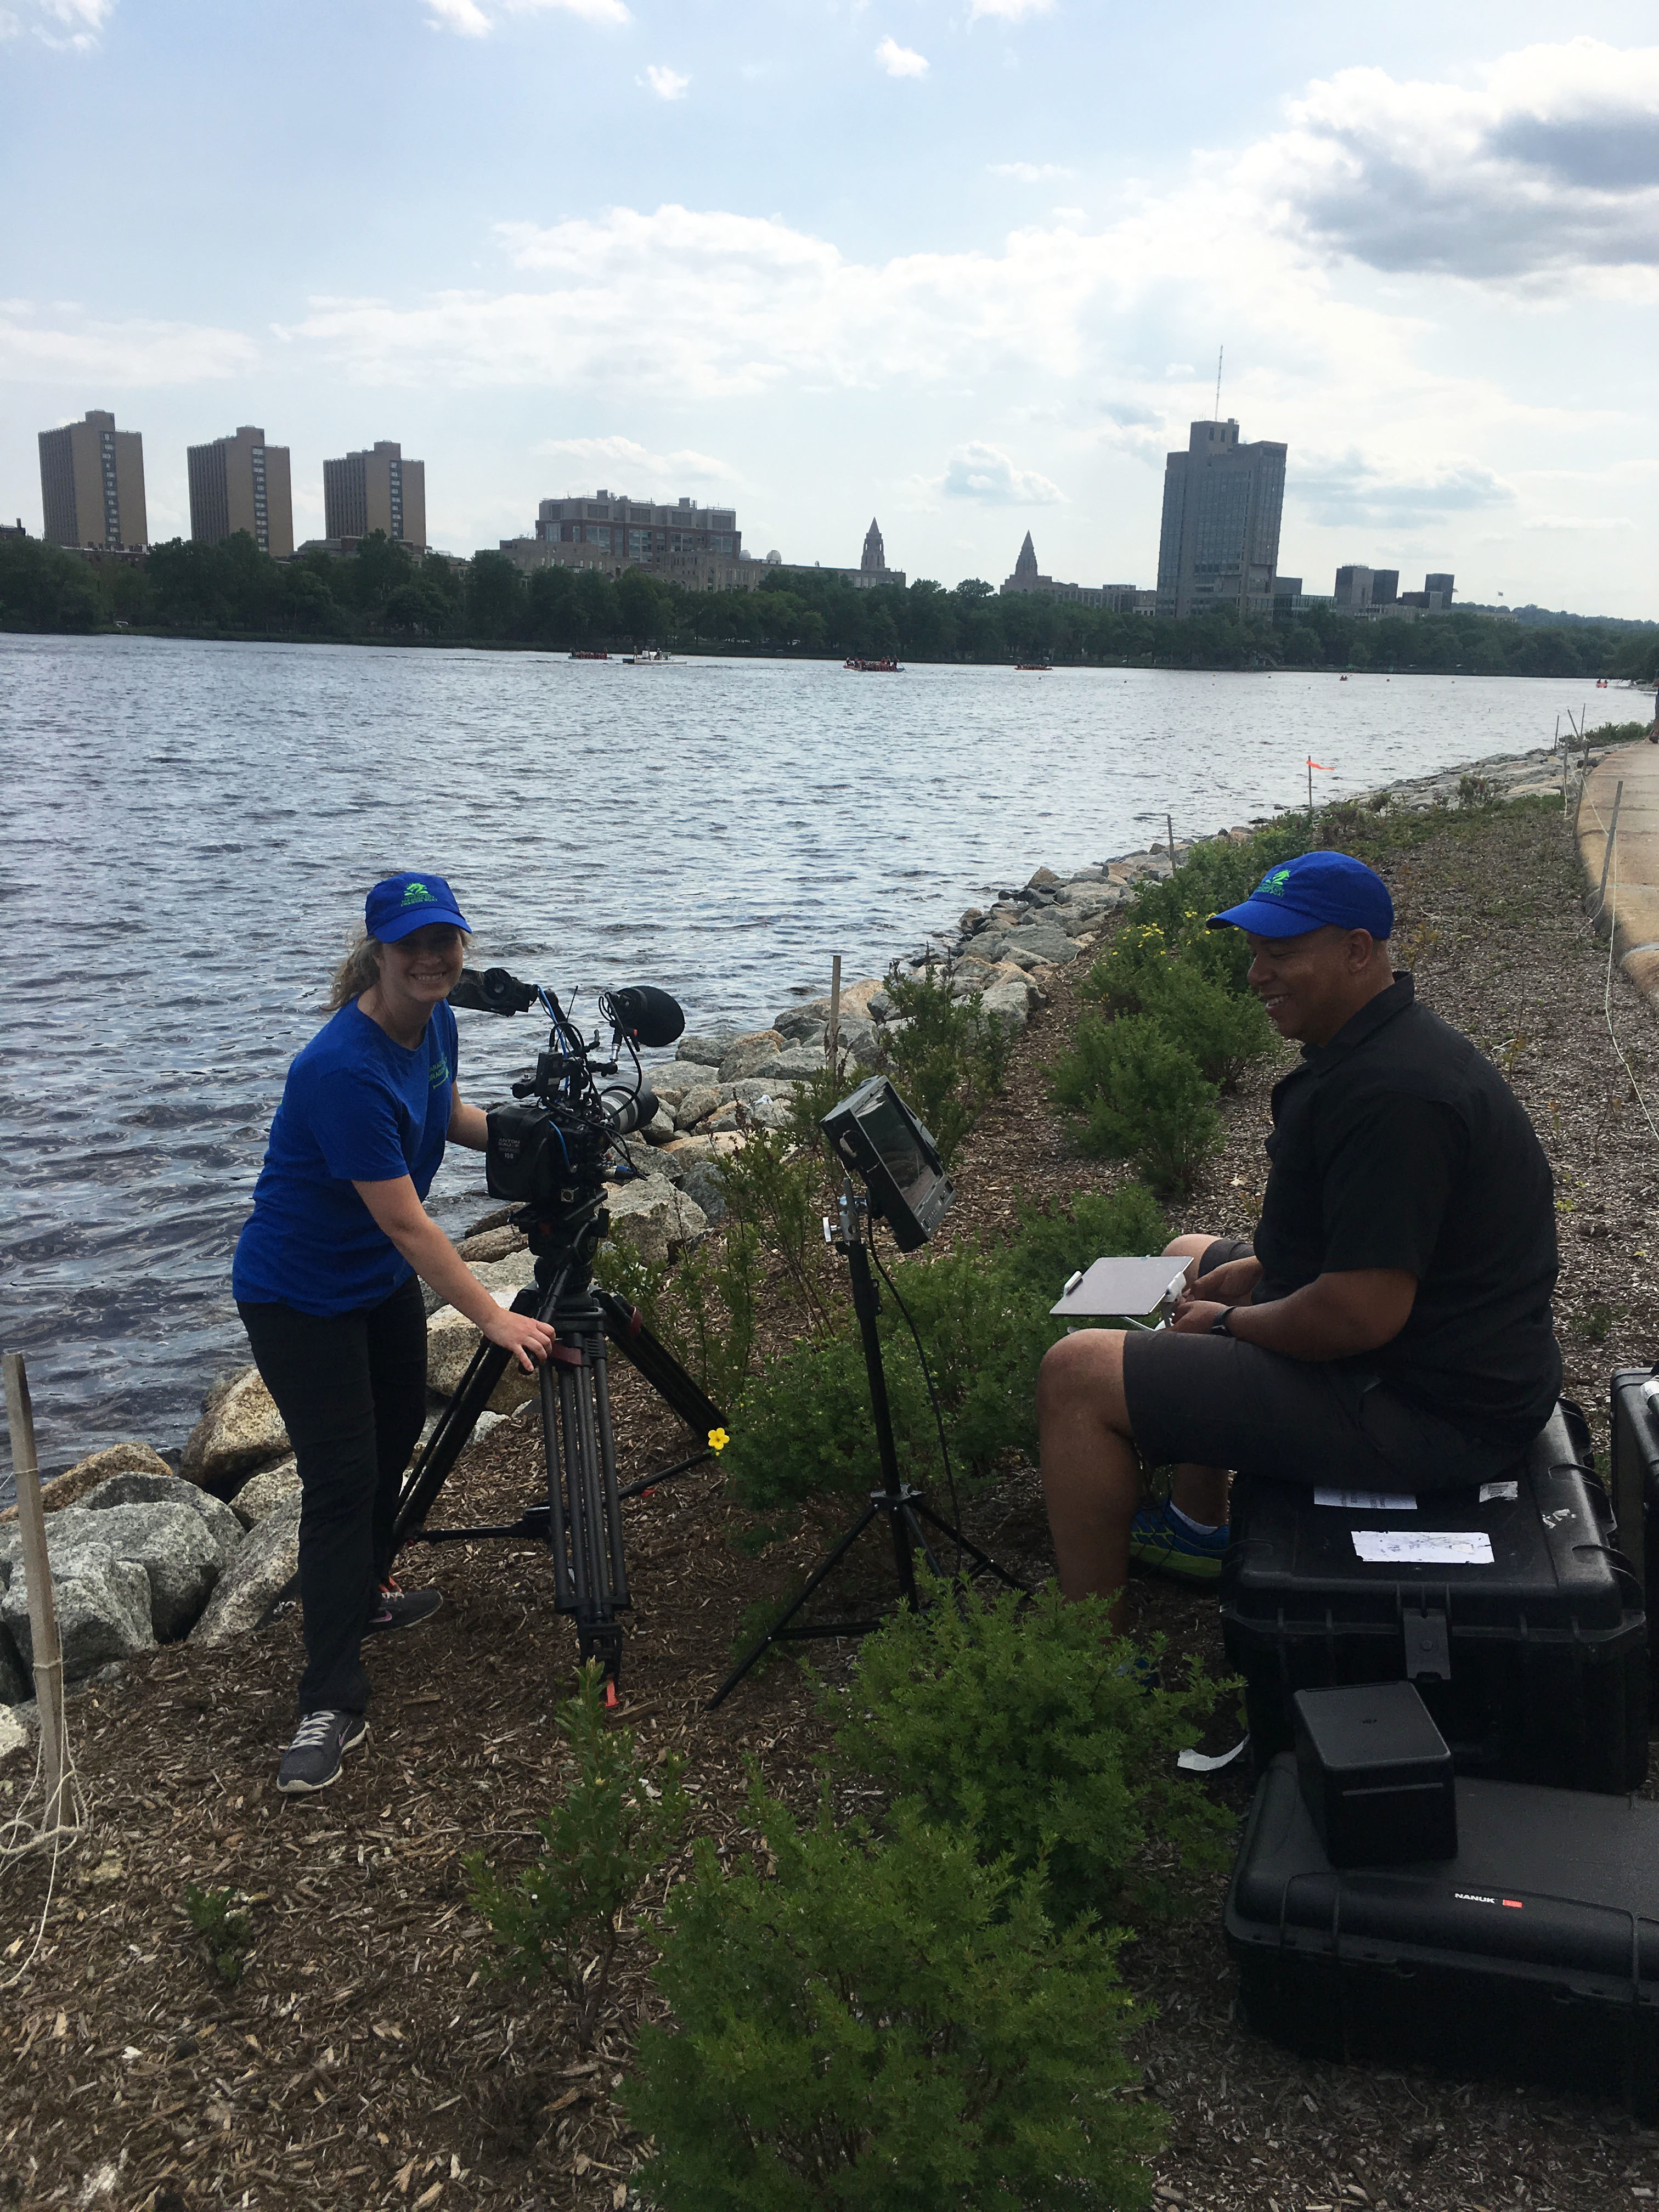 Filmmaker Katie Prentiss Onsager and Cinematographer Corey Lillard set up equipment on the bank of the Charles River.